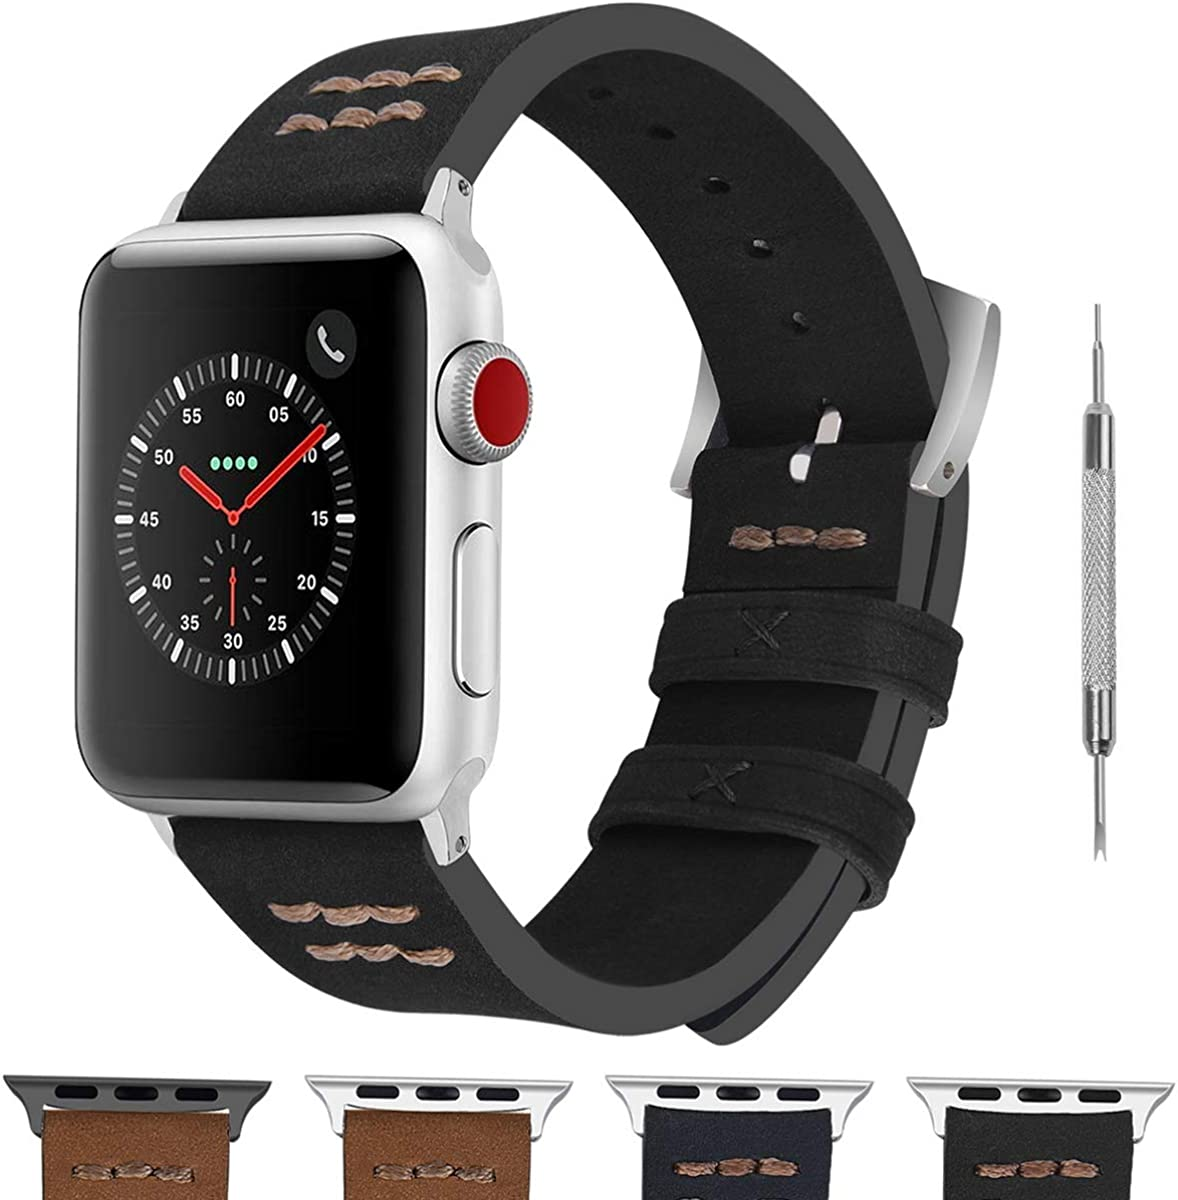 Fullmosa Apple Watch Band Compatible for Apple Watch SE & Series 6/5/4/3/2/1,Fuma Suede Vintage Hand-Stitched iWatch Band for Apple Watch 38mm 42mm 40mm 44mm